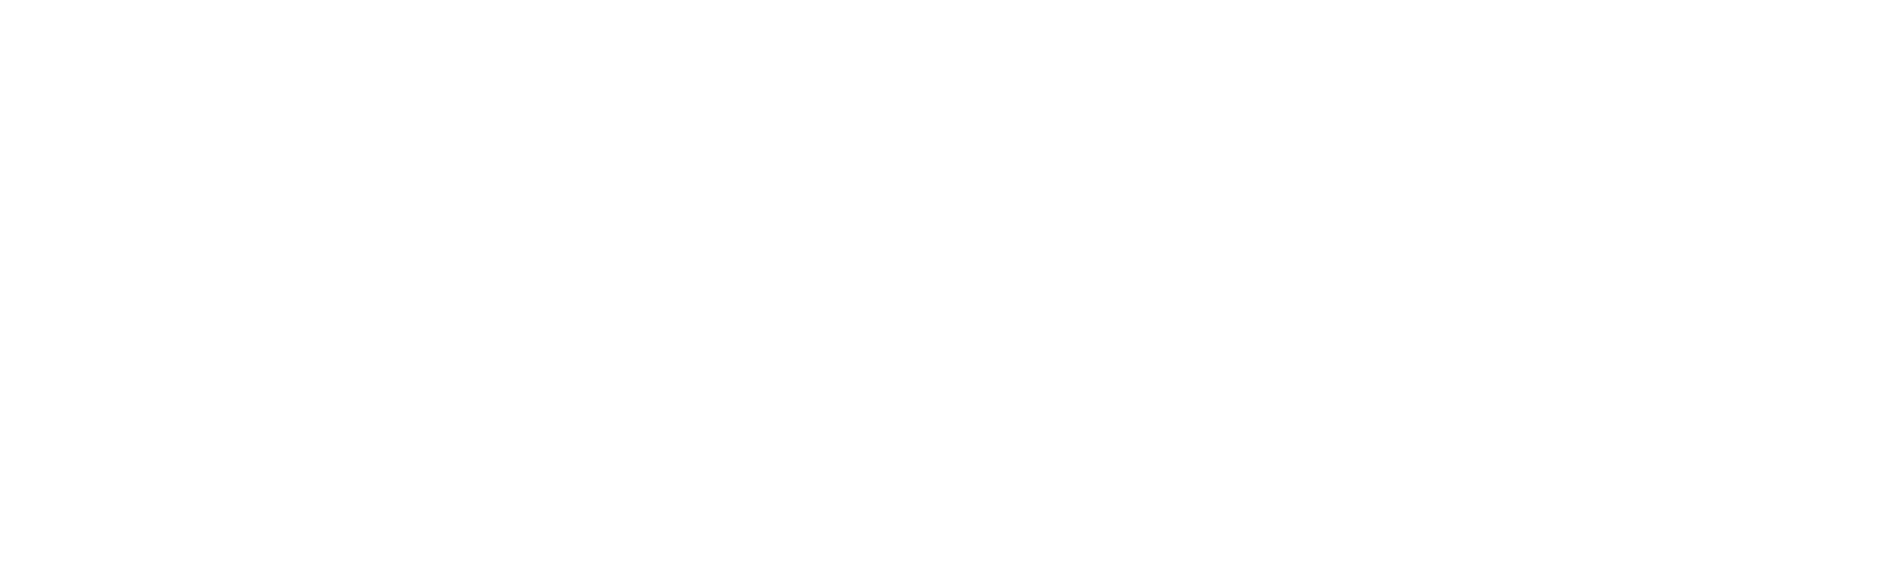 FLS Transport Logo